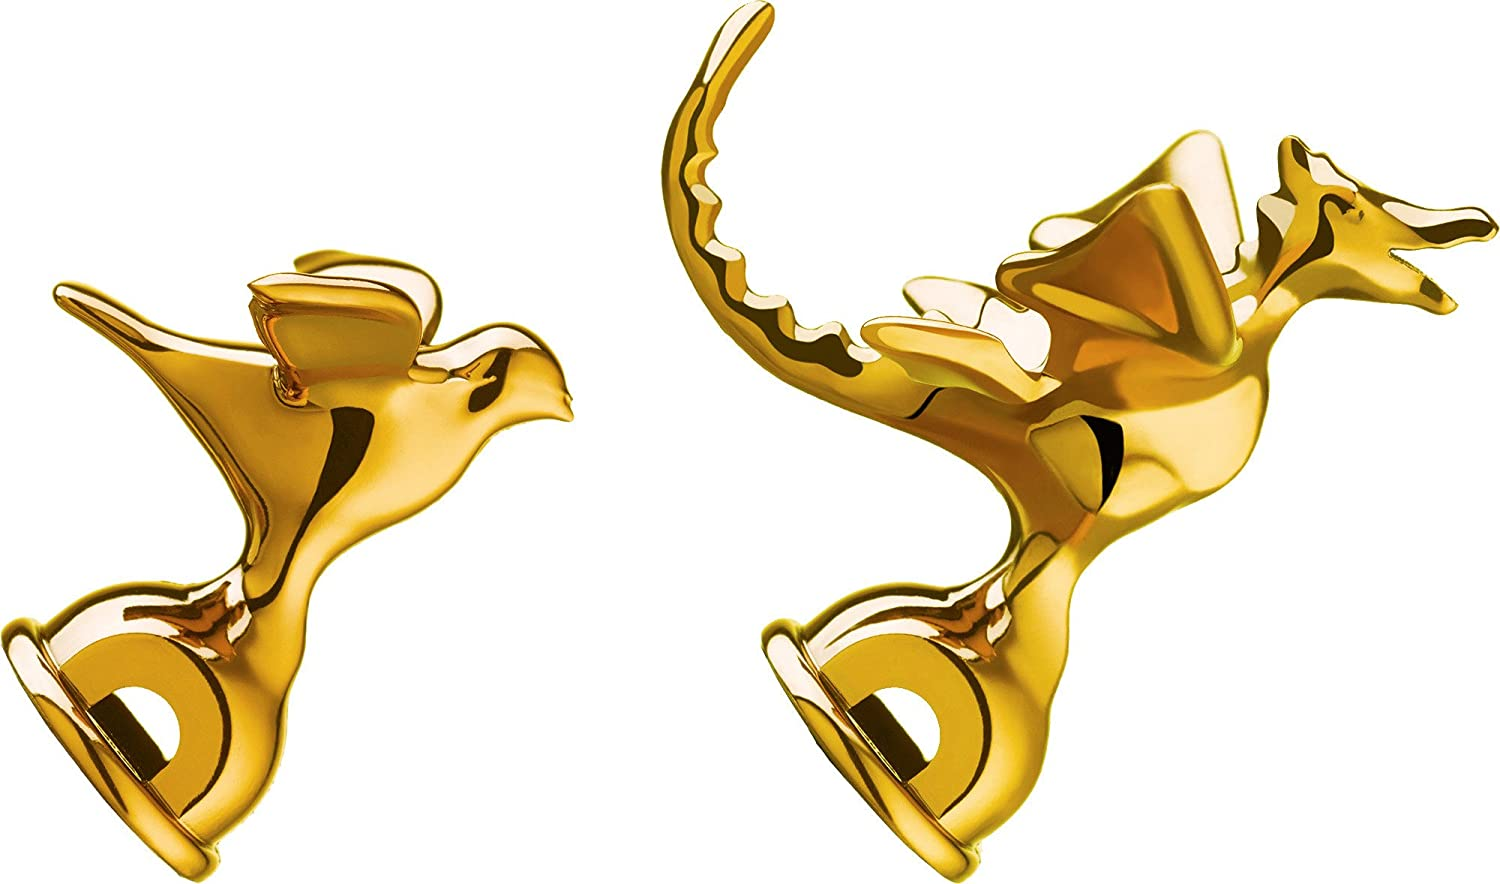 Alessi Whistles in Pa Brass Metallic Finish Limited Edition Of 9999 (Set of 2), gold